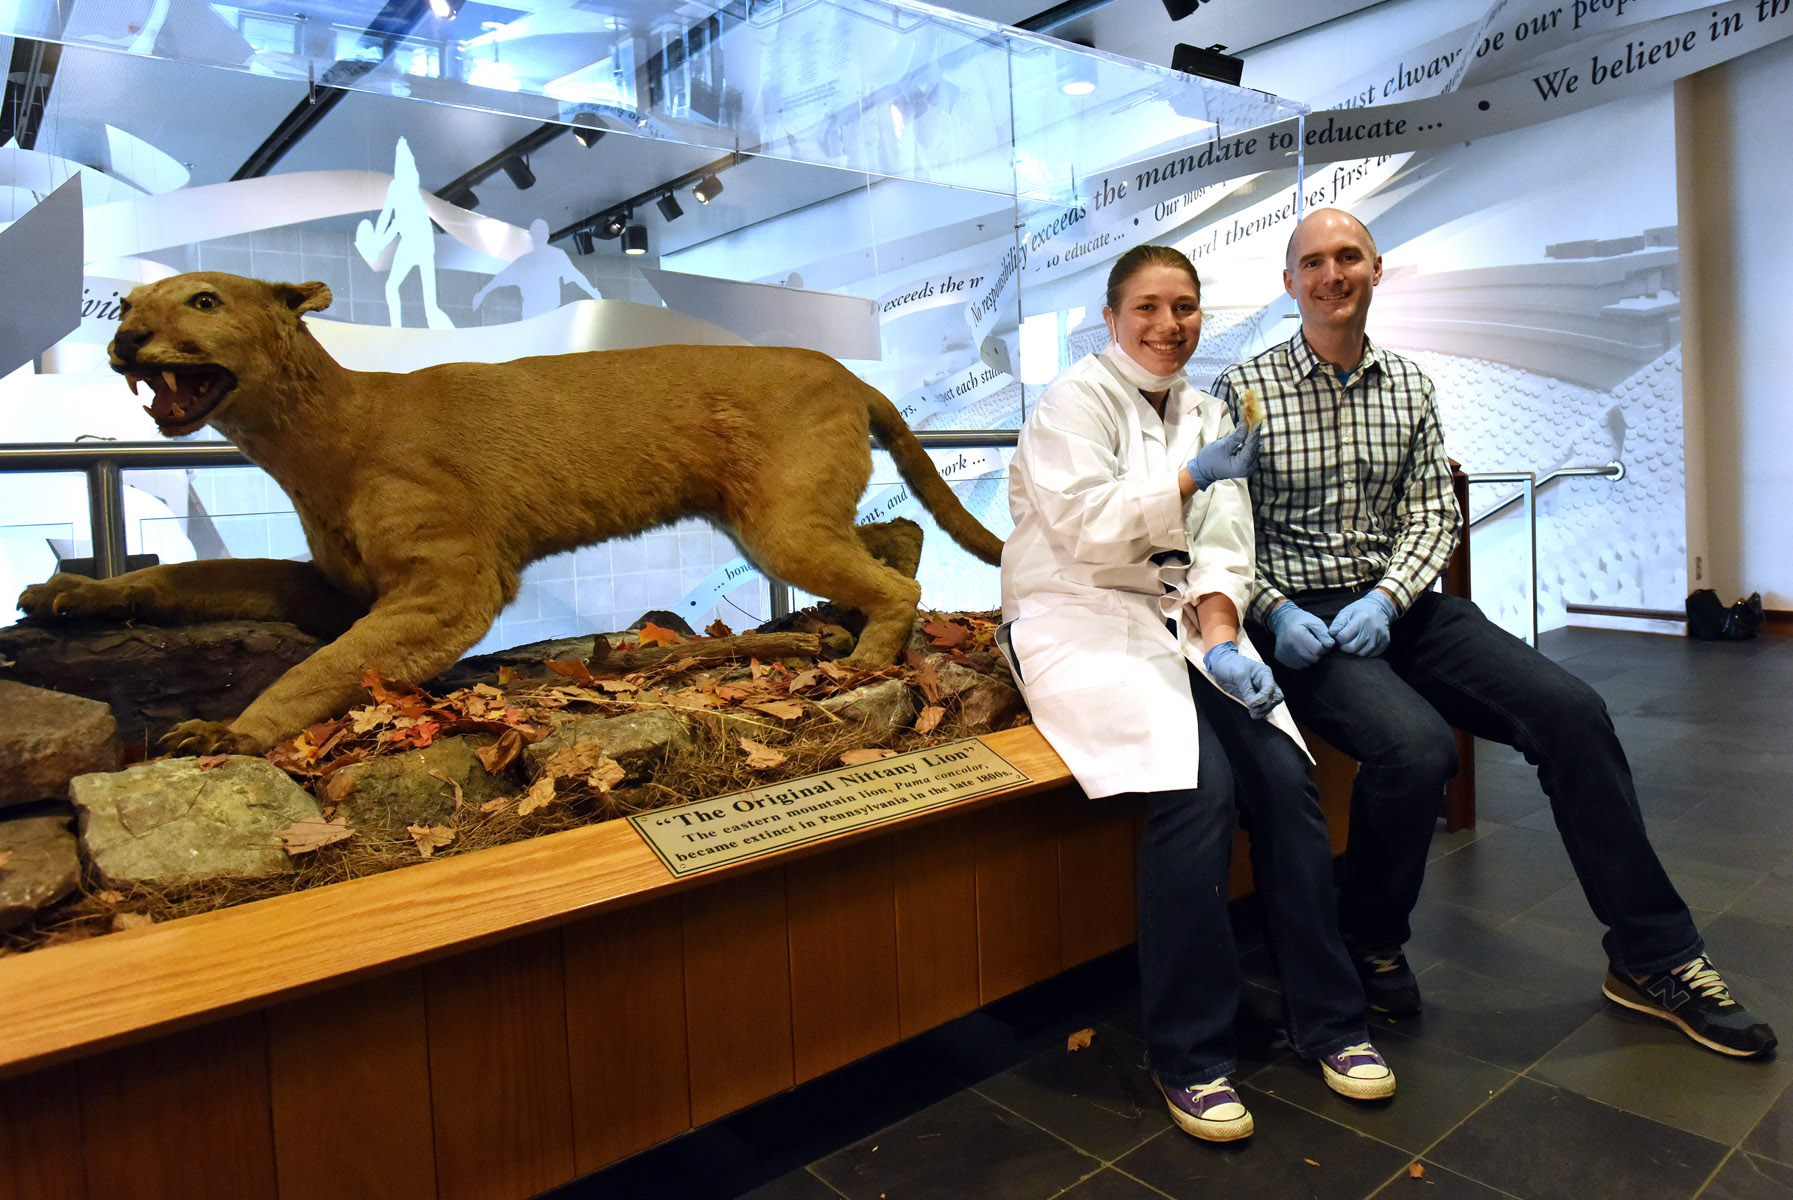 Undergraduate student Maya Evanitsky, who led the first phase of the Nittany Lion Genome Project, with Dr. Perry and one of the sampled Nittany Lions.